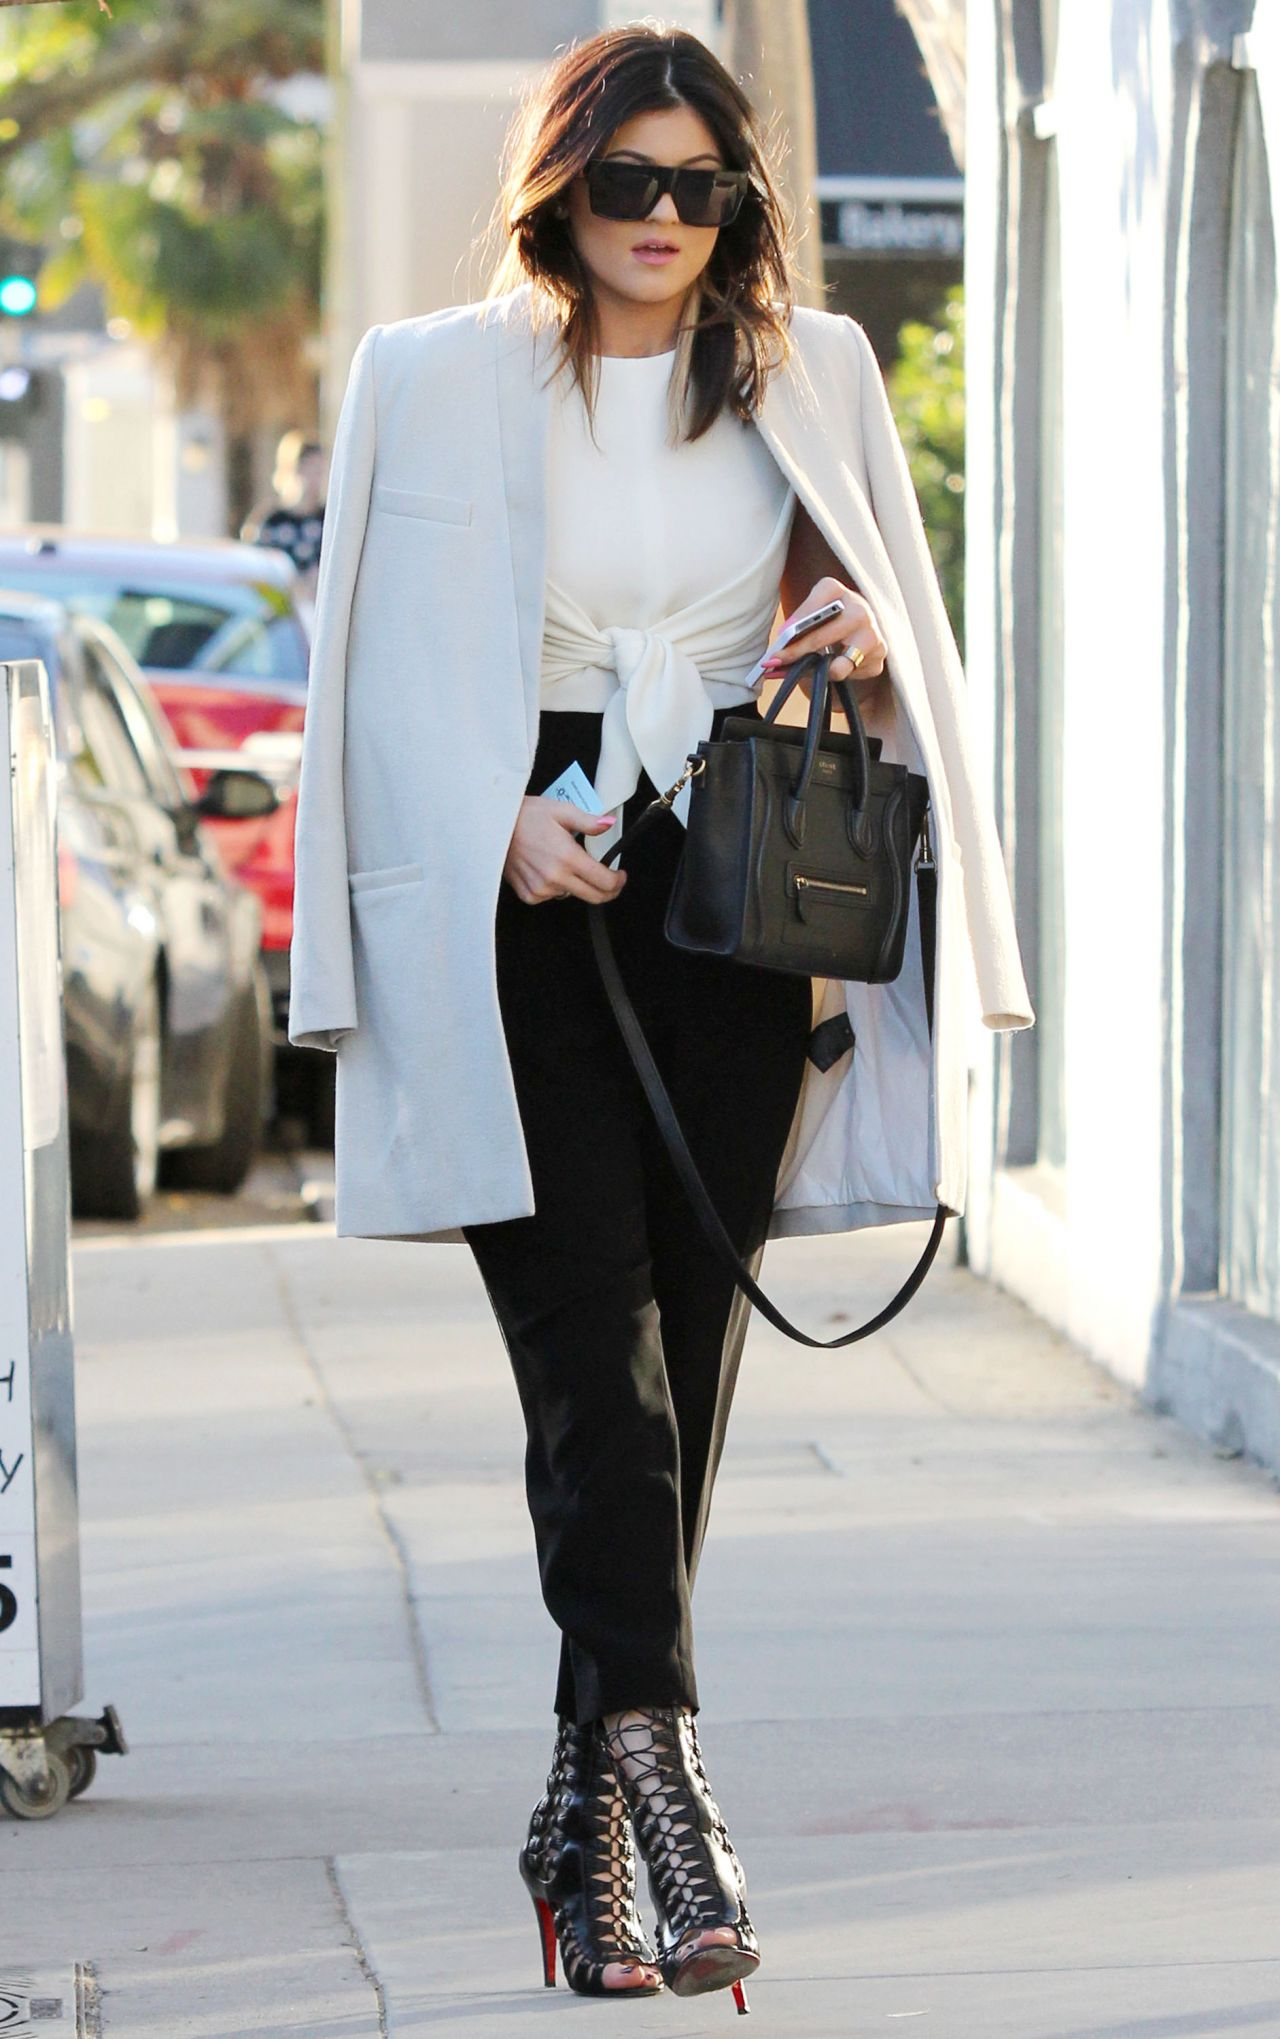 kylie-jenner-street-style-leaving-urth-cafe-in-west-hollywood-january-2014_1